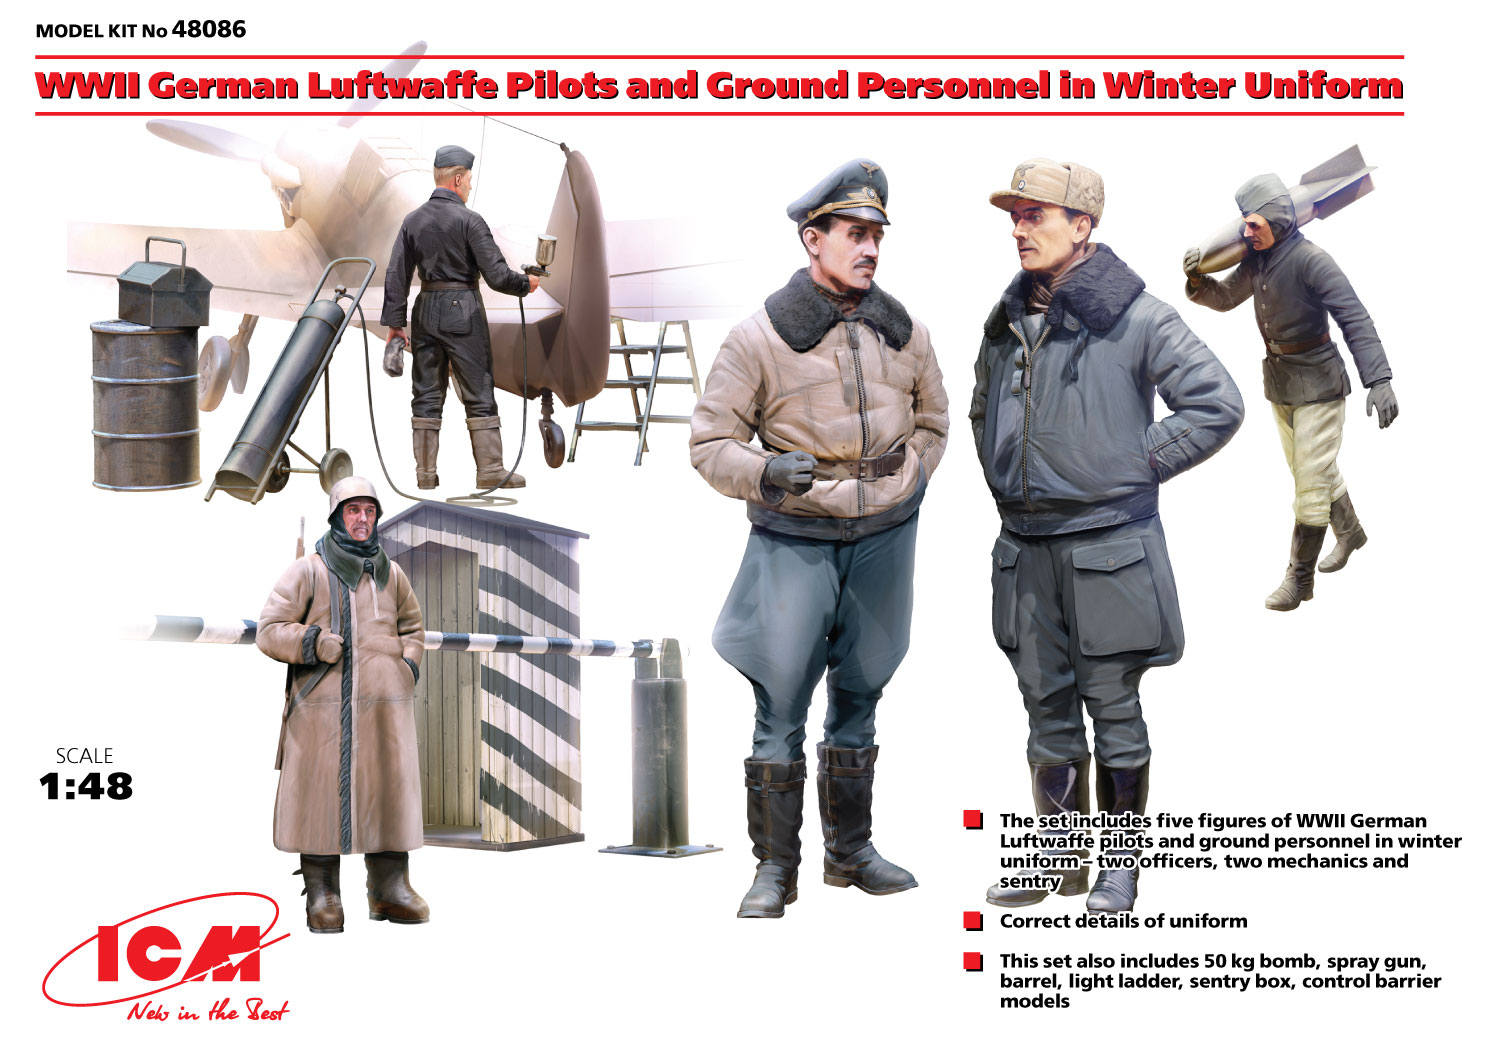 Figures, Kit, 1:48, Pilots and Ground Personal